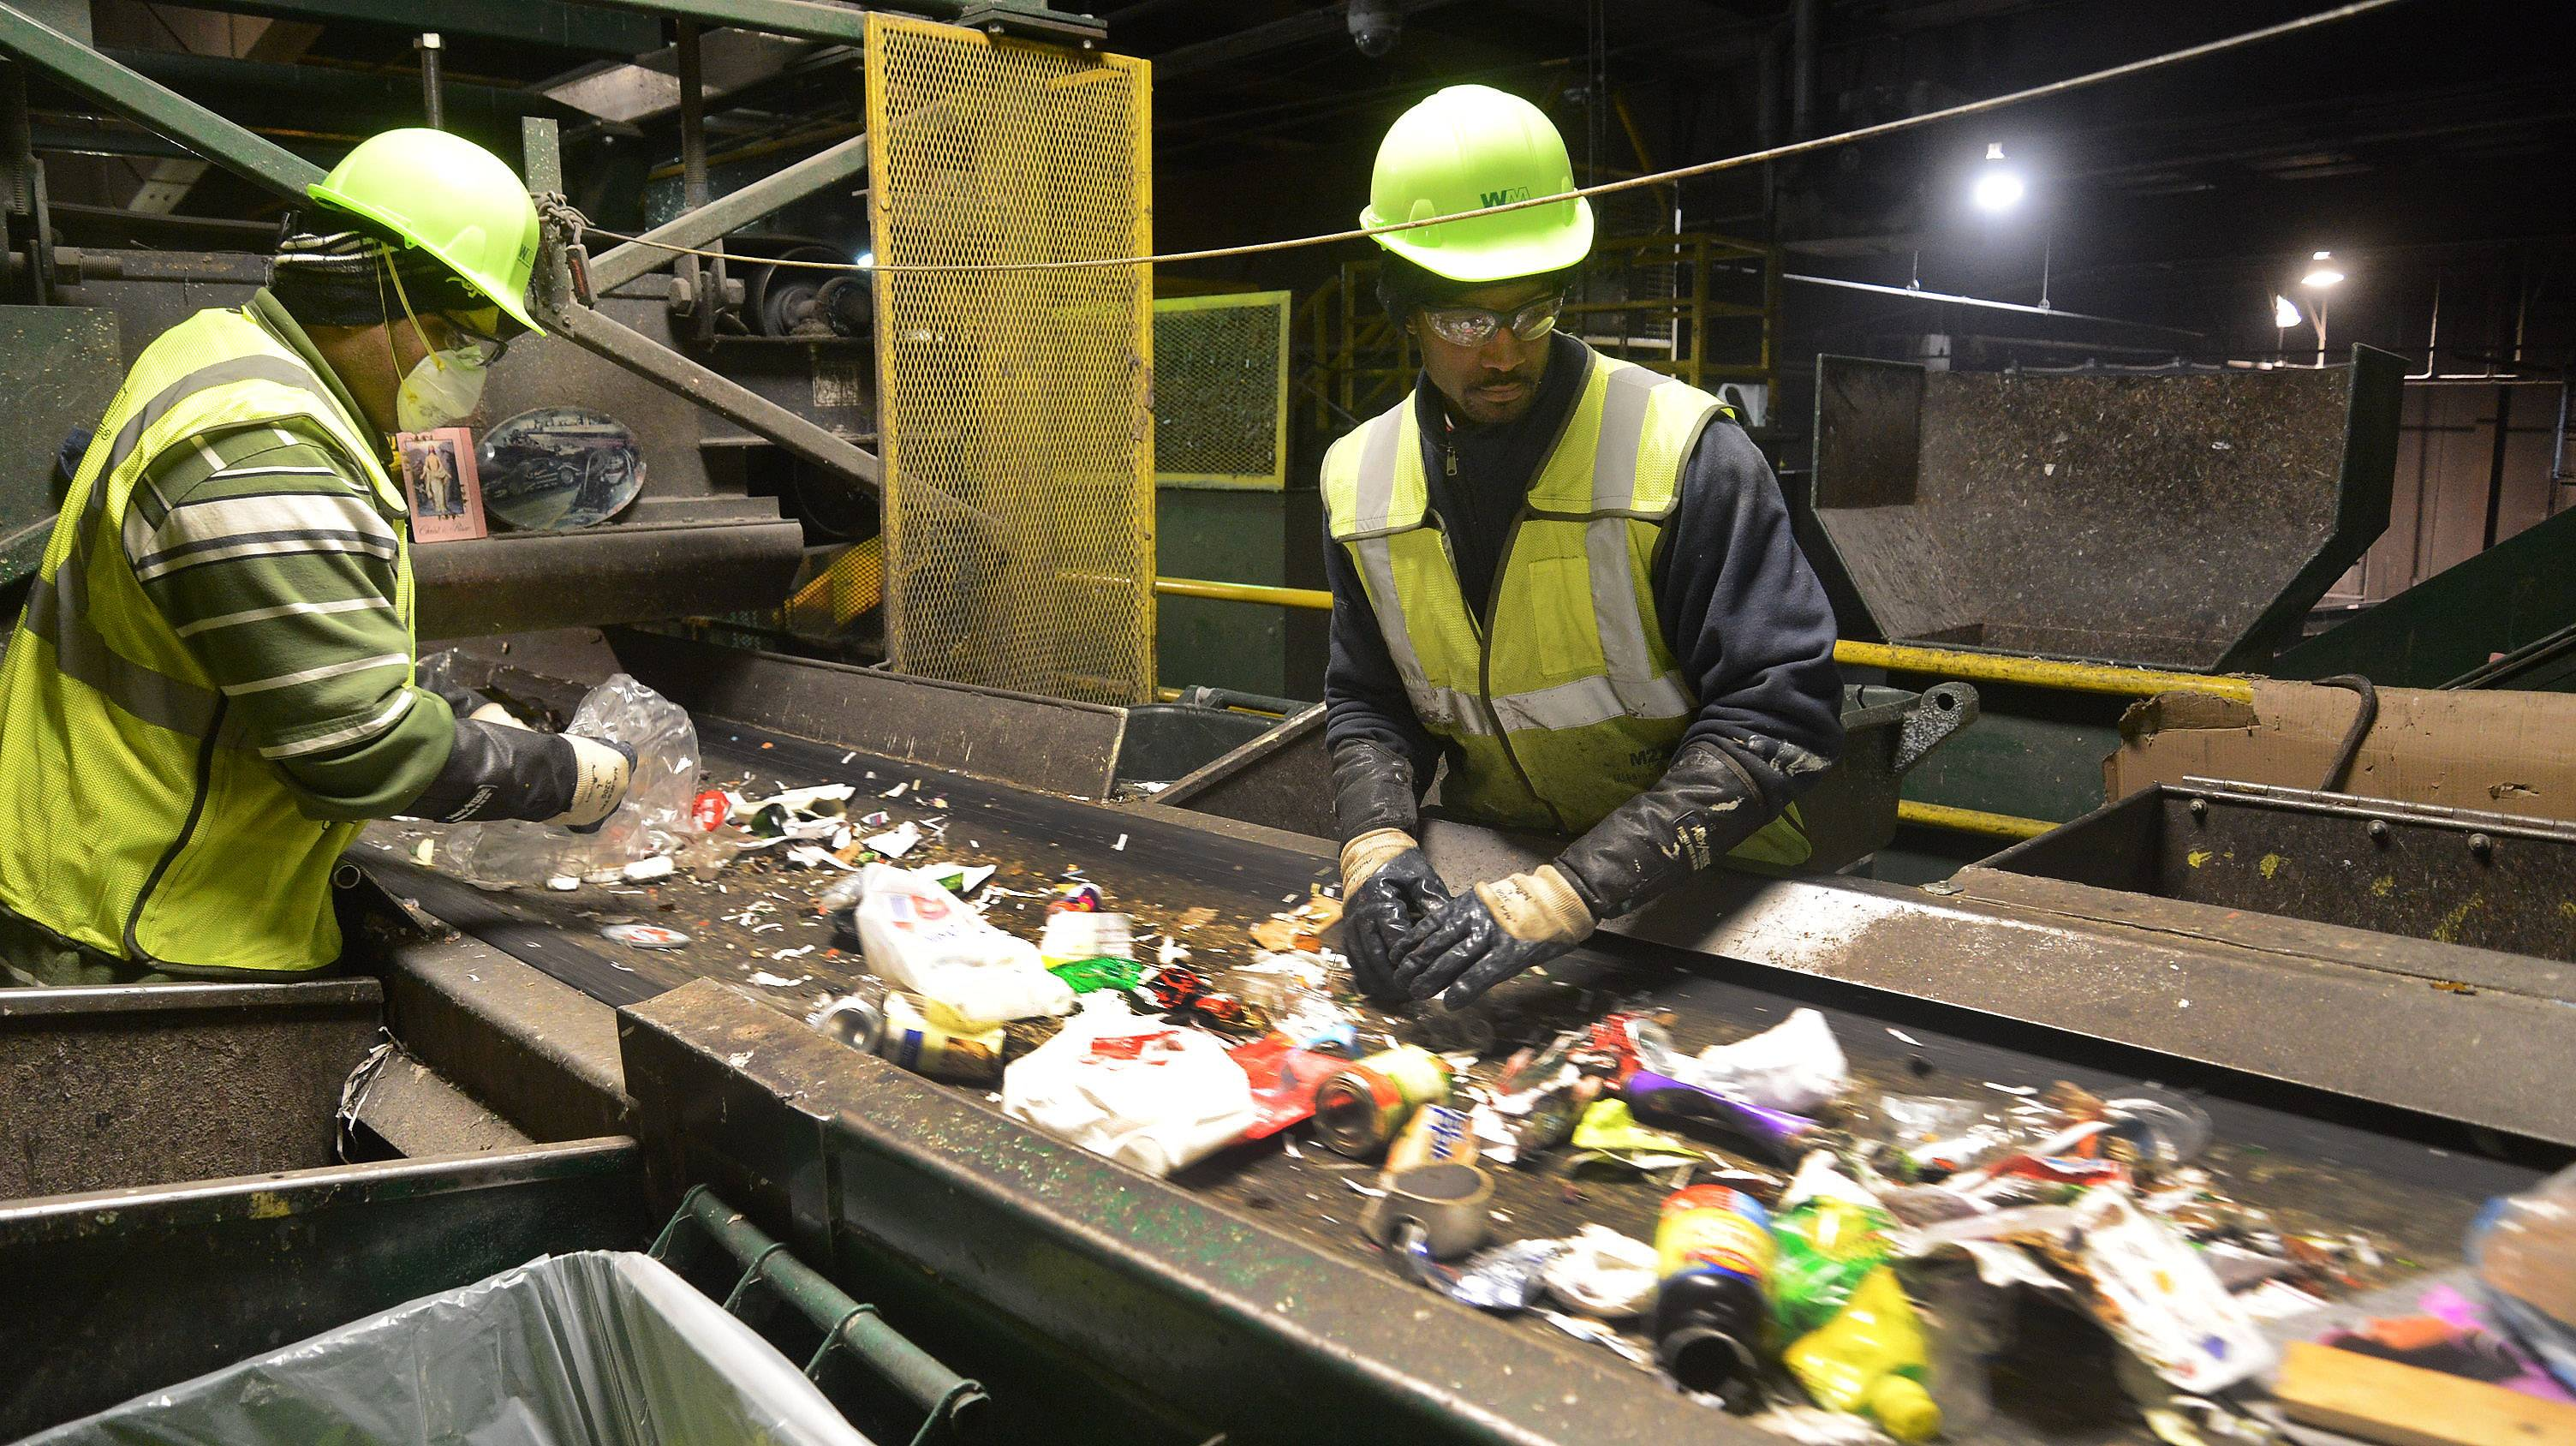 Recycling options part of Lake County waste management plan